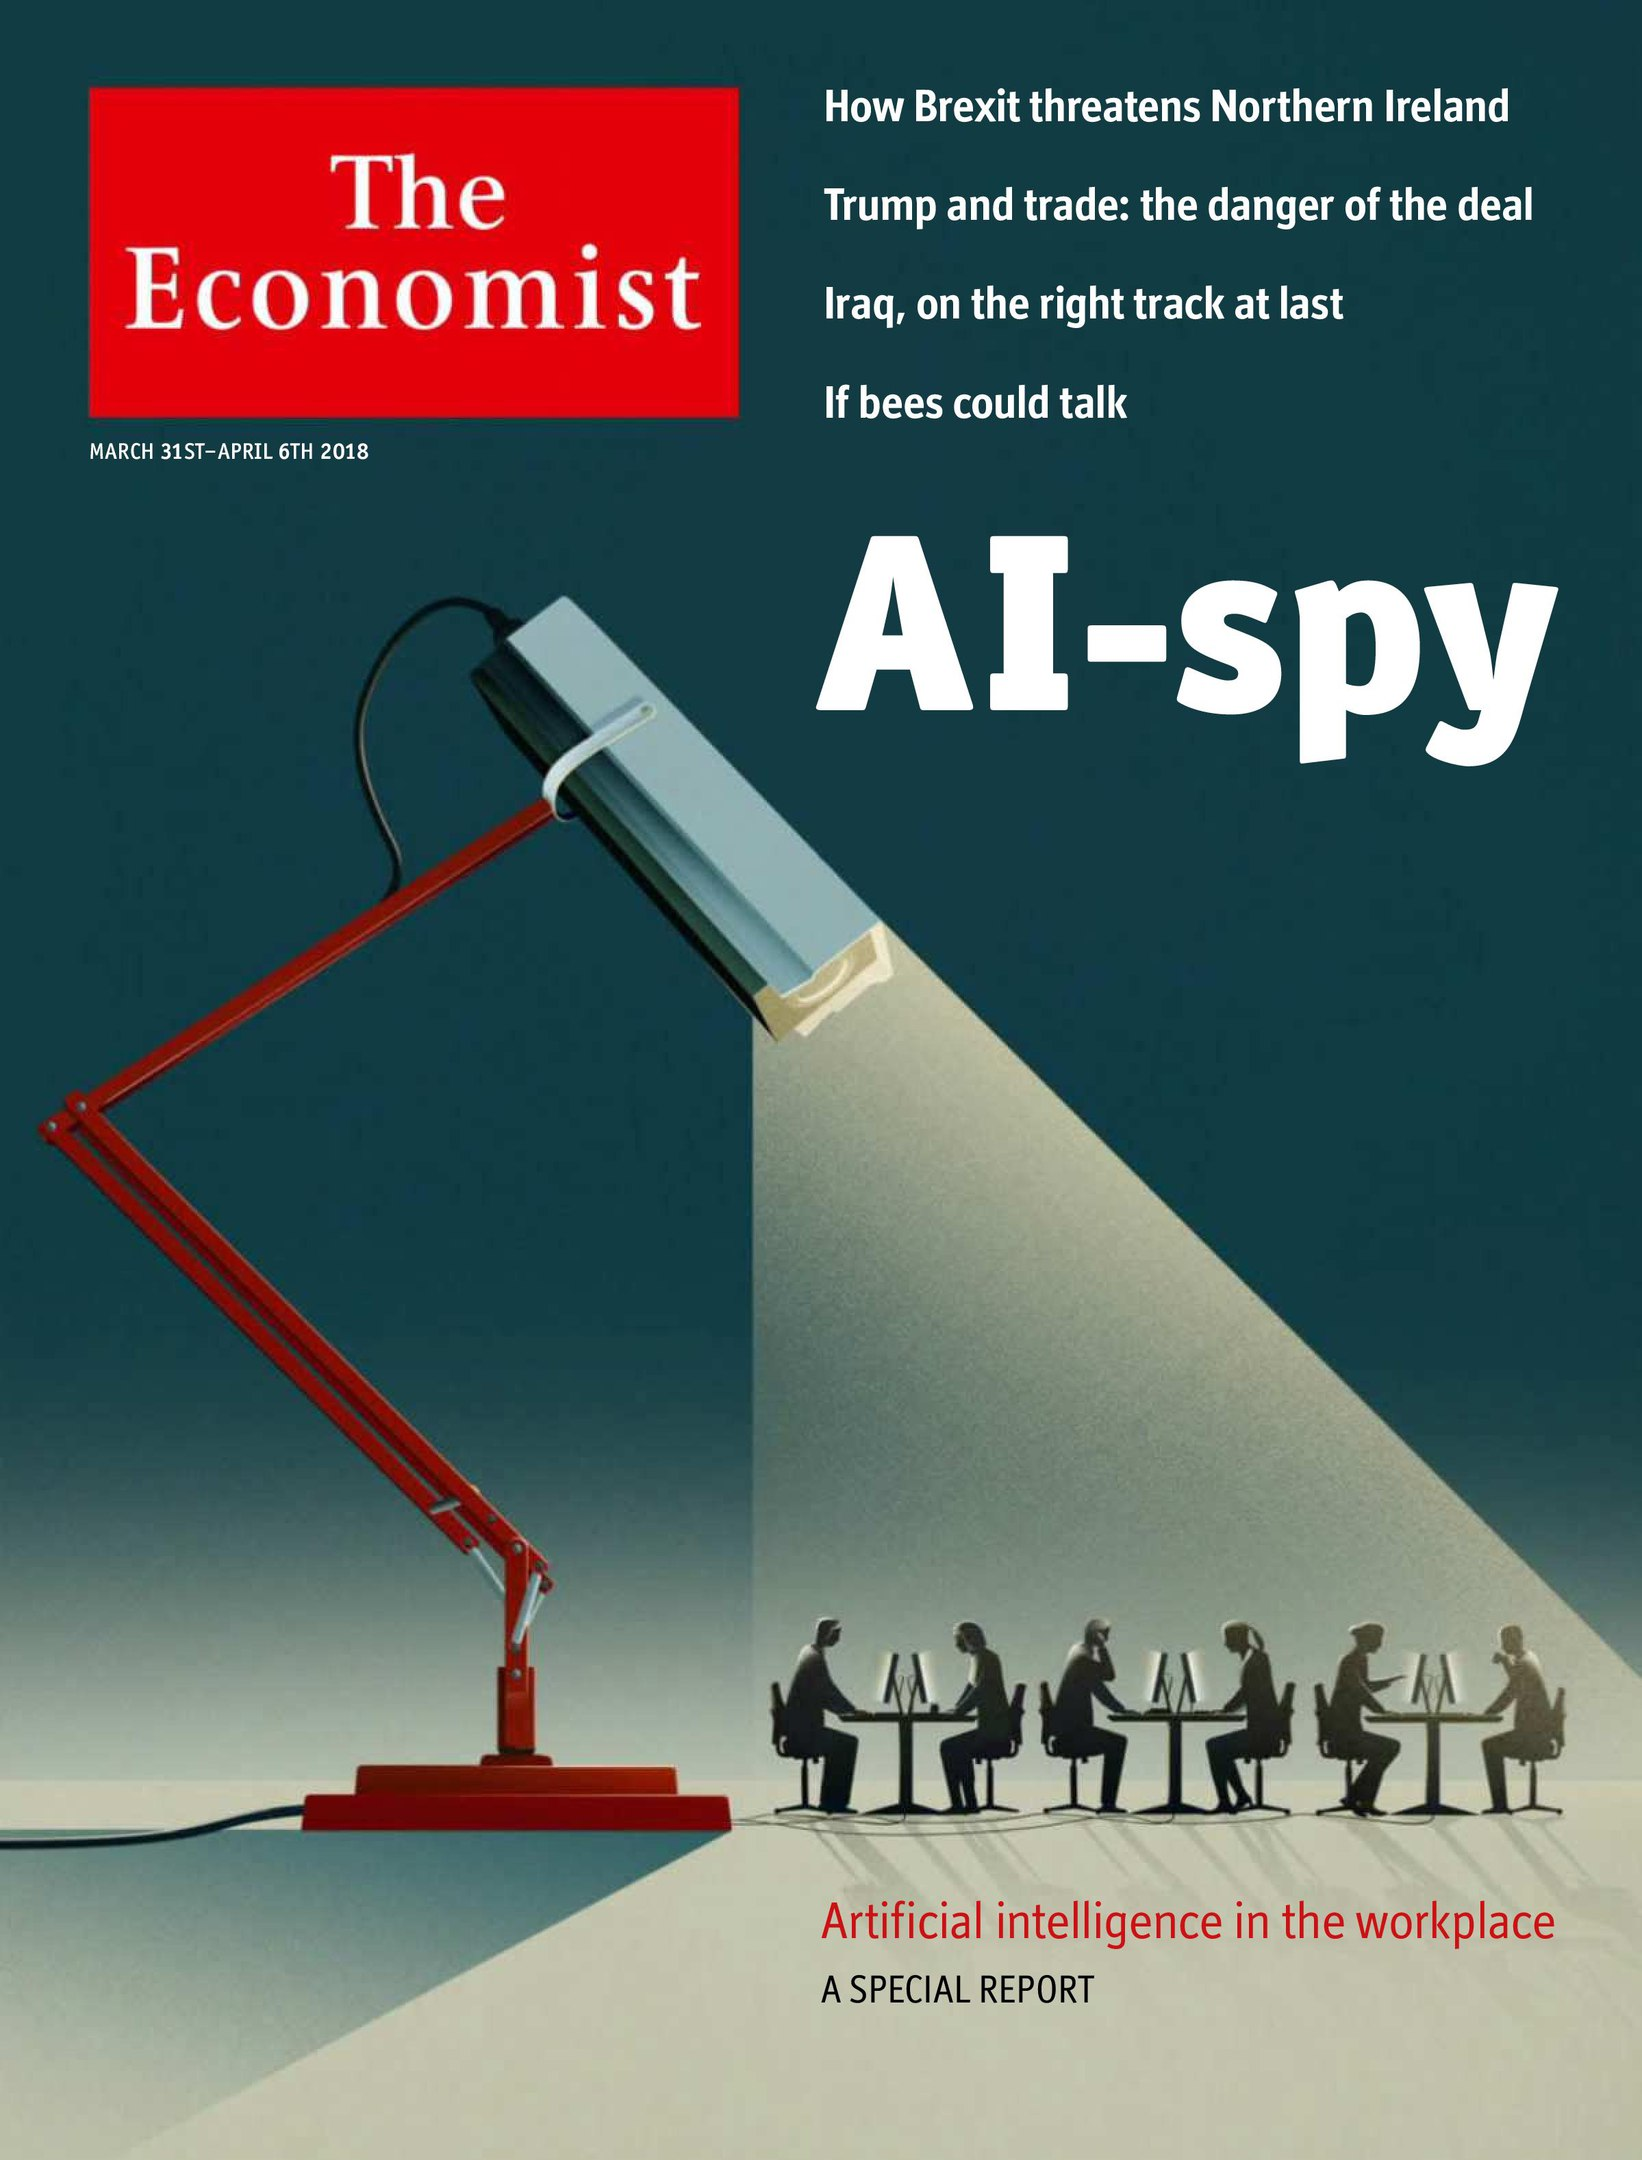 The Economist Asia Edition - March 31, 2018 PDF download free, reading